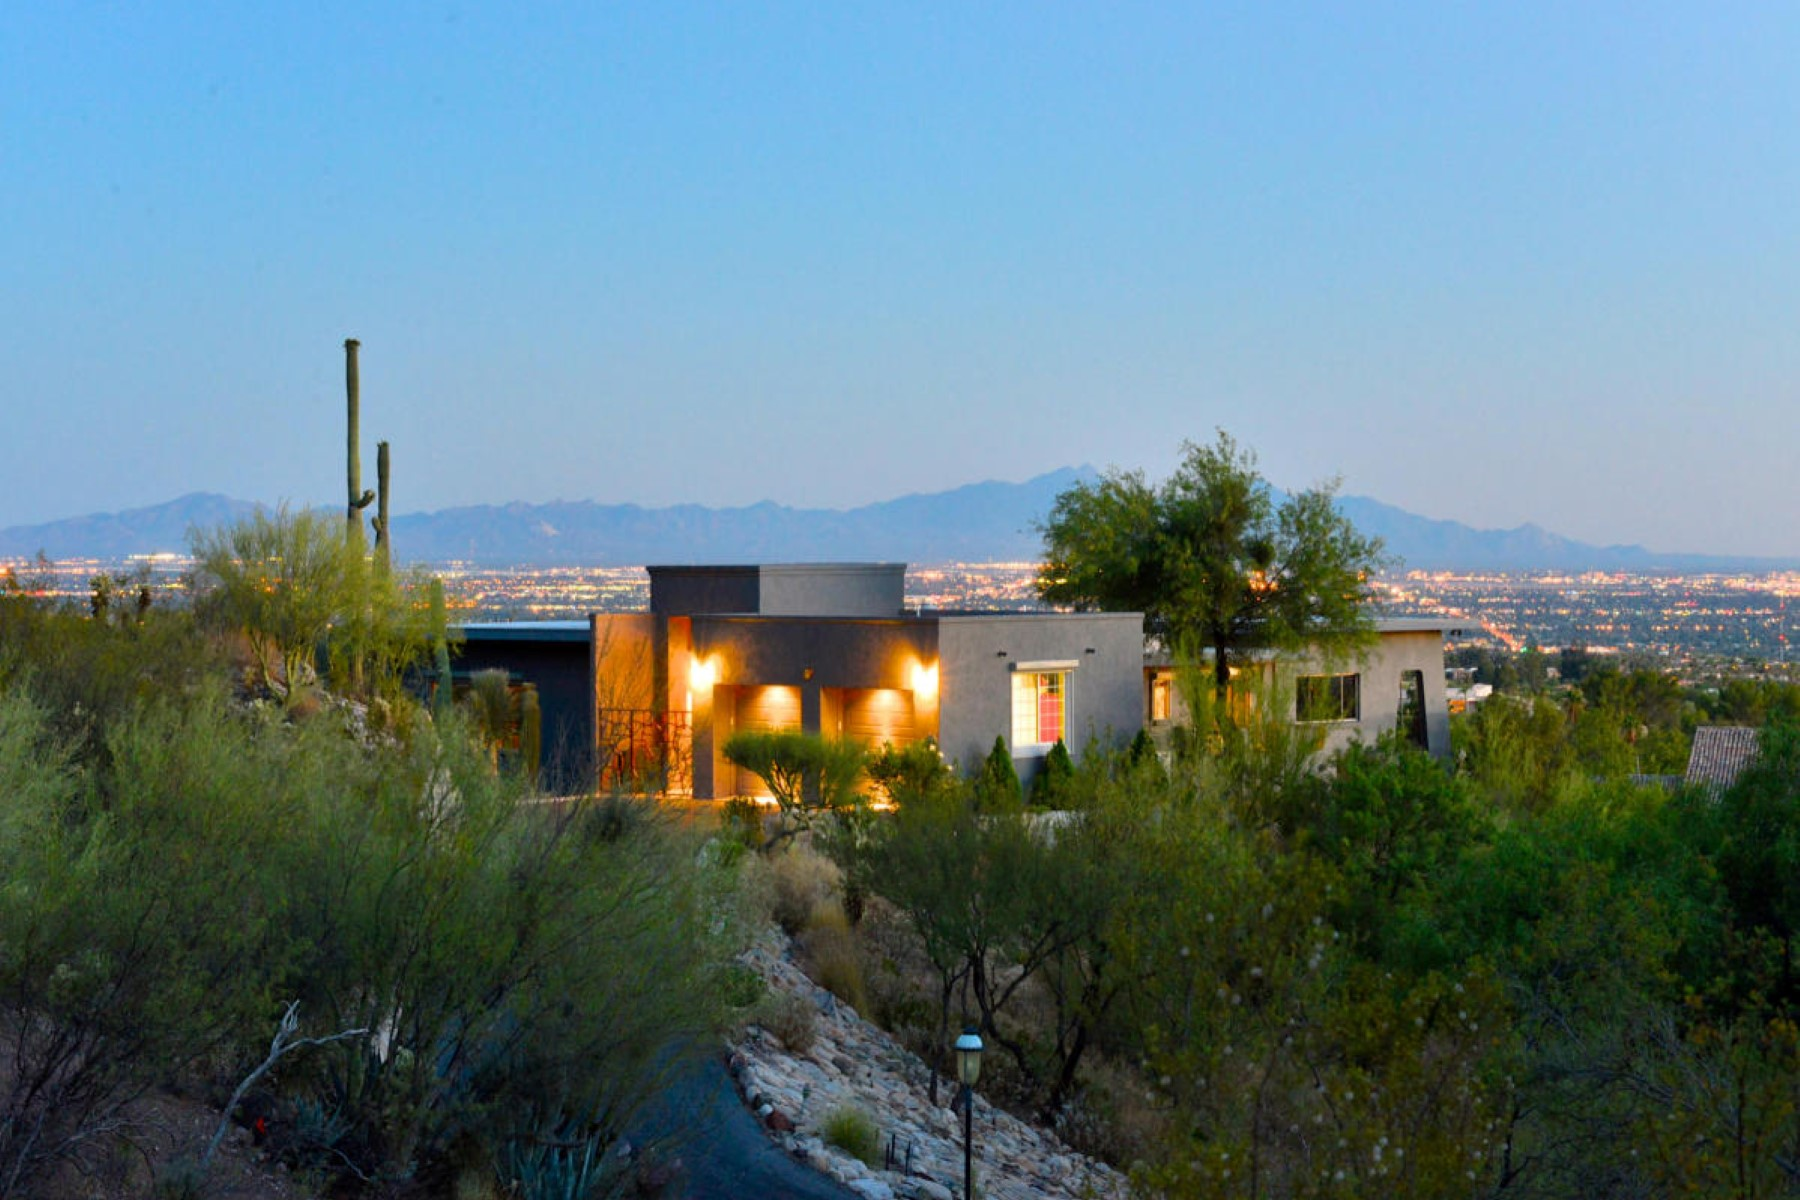 Tek Ailelik Ev için Satış at Extraordinary modern contemporary home with spectacular city views. 4940 E Winged Foot Drive Tucson, Arizona, 85718 Amerika Birleşik Devletleri